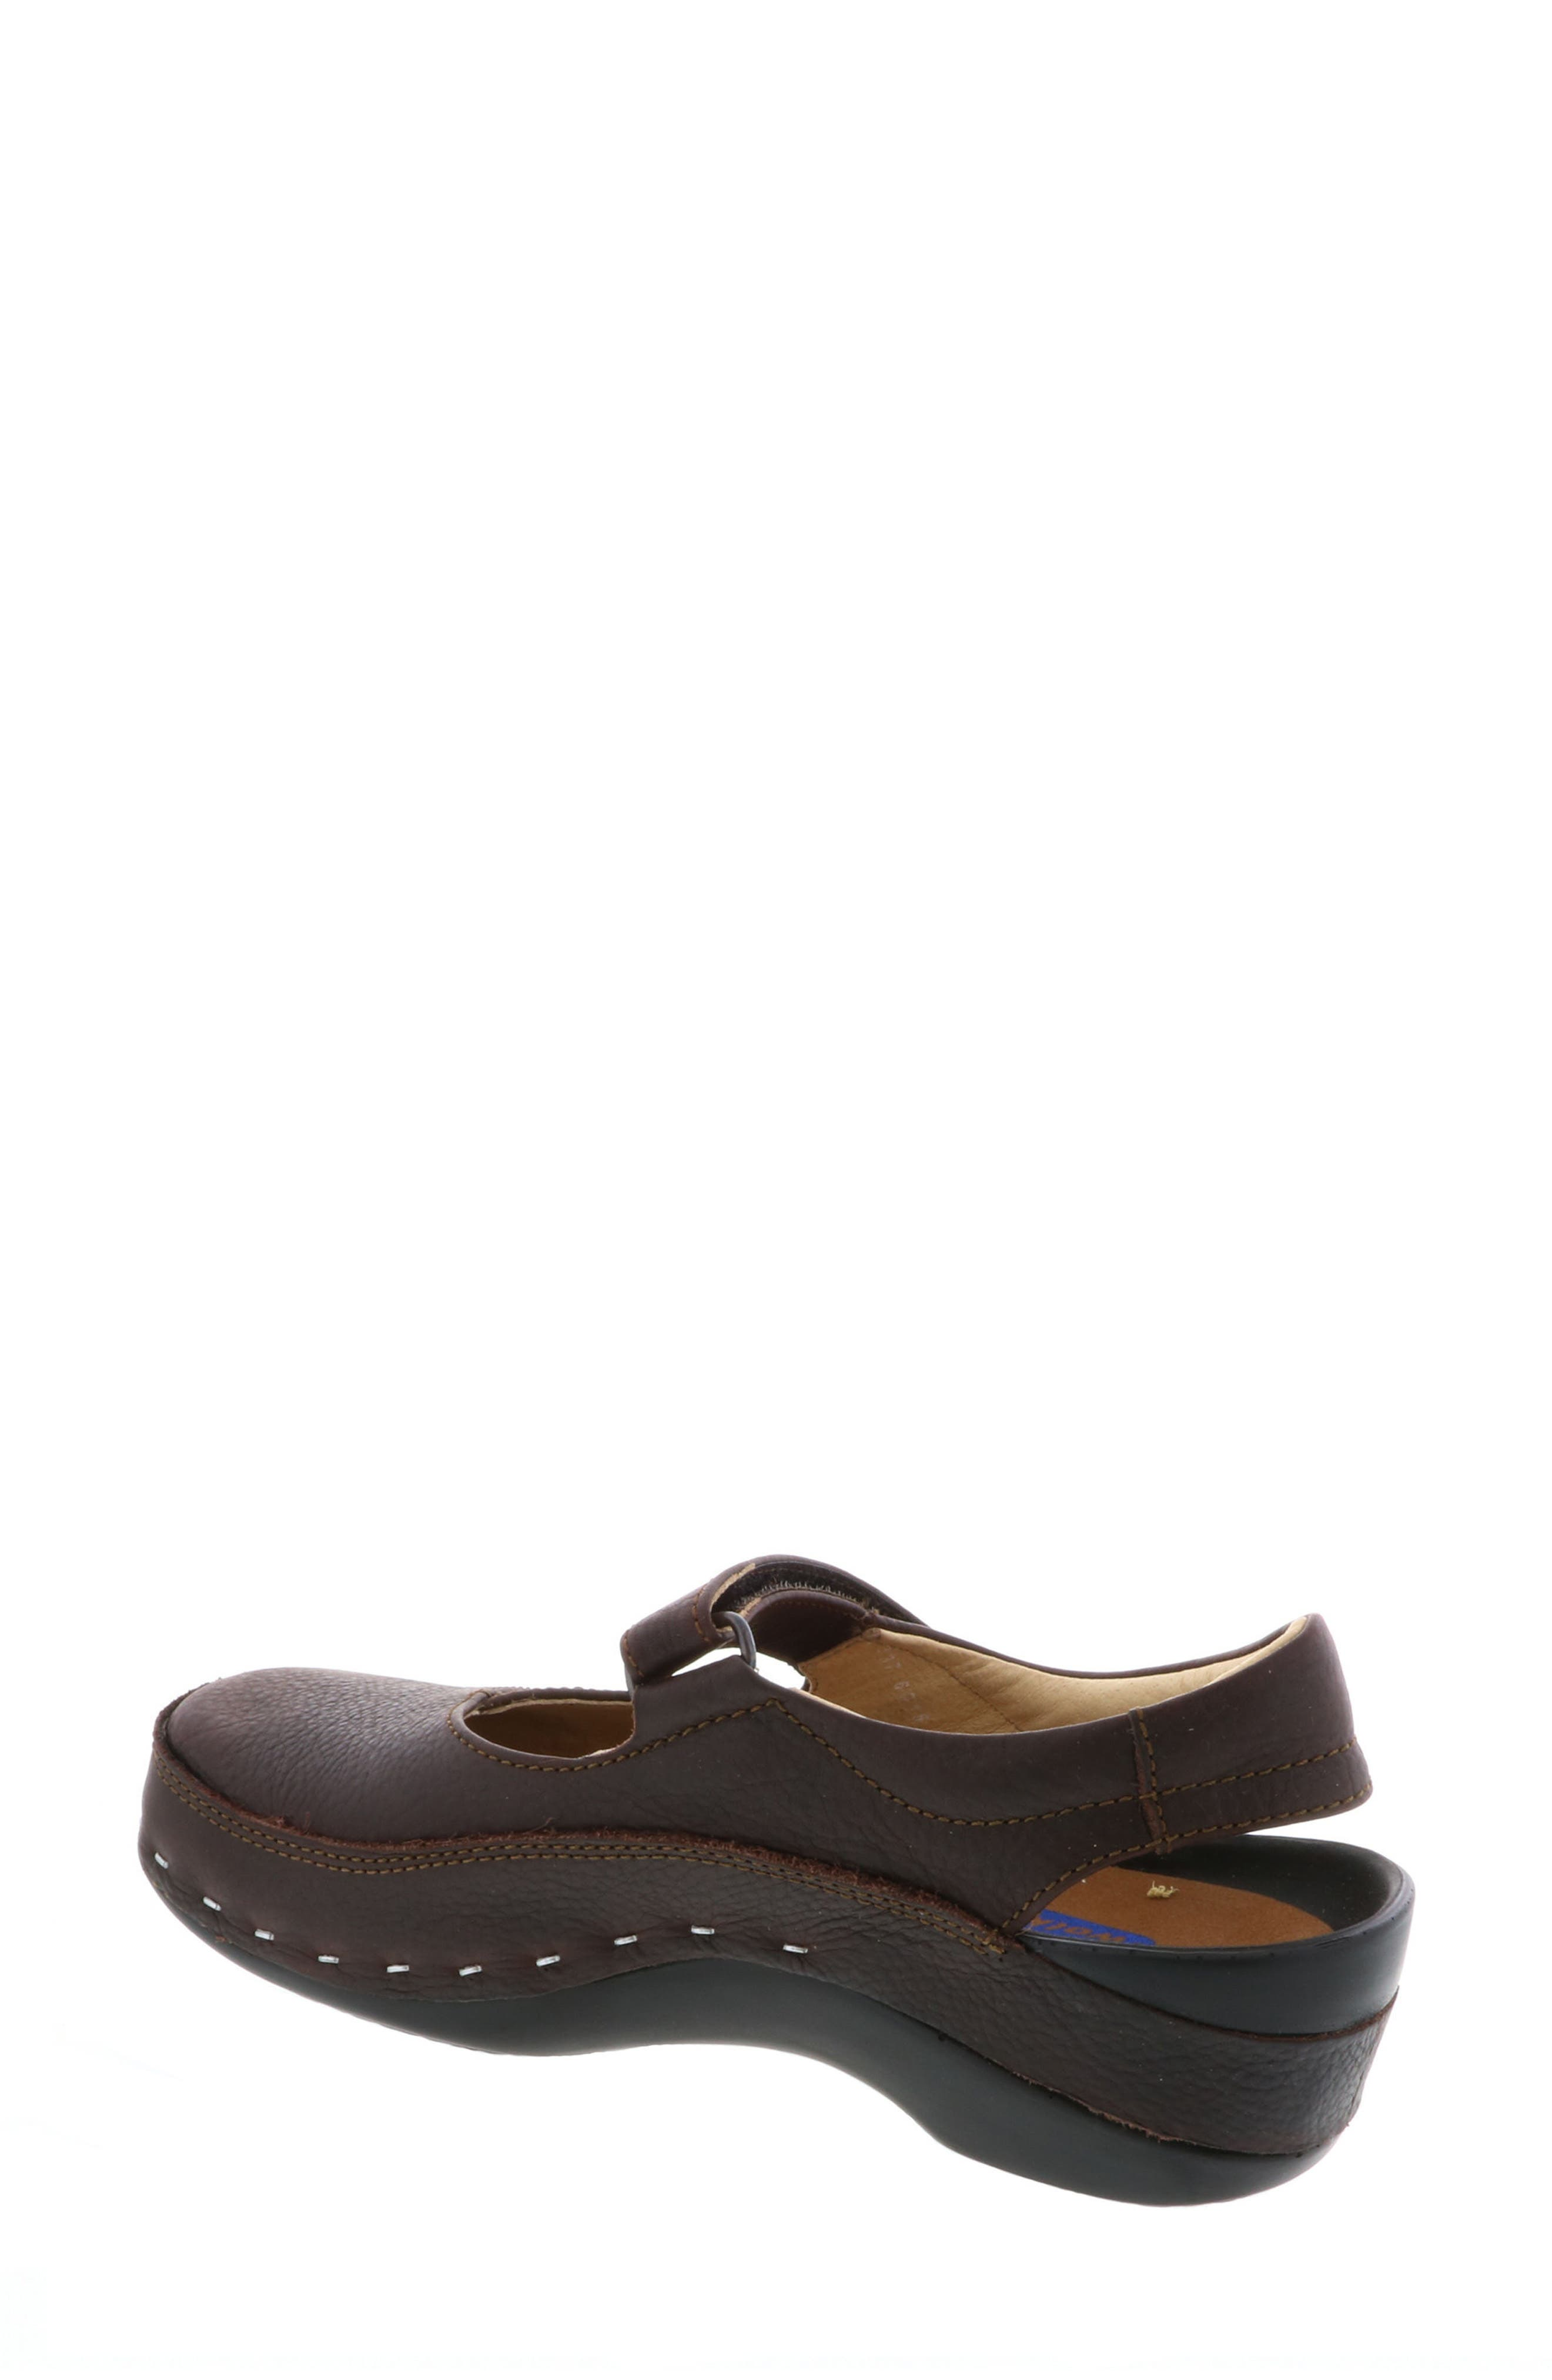 Ankle Strap Clog,                             Alternate thumbnail 2, color,                             Brown Leather